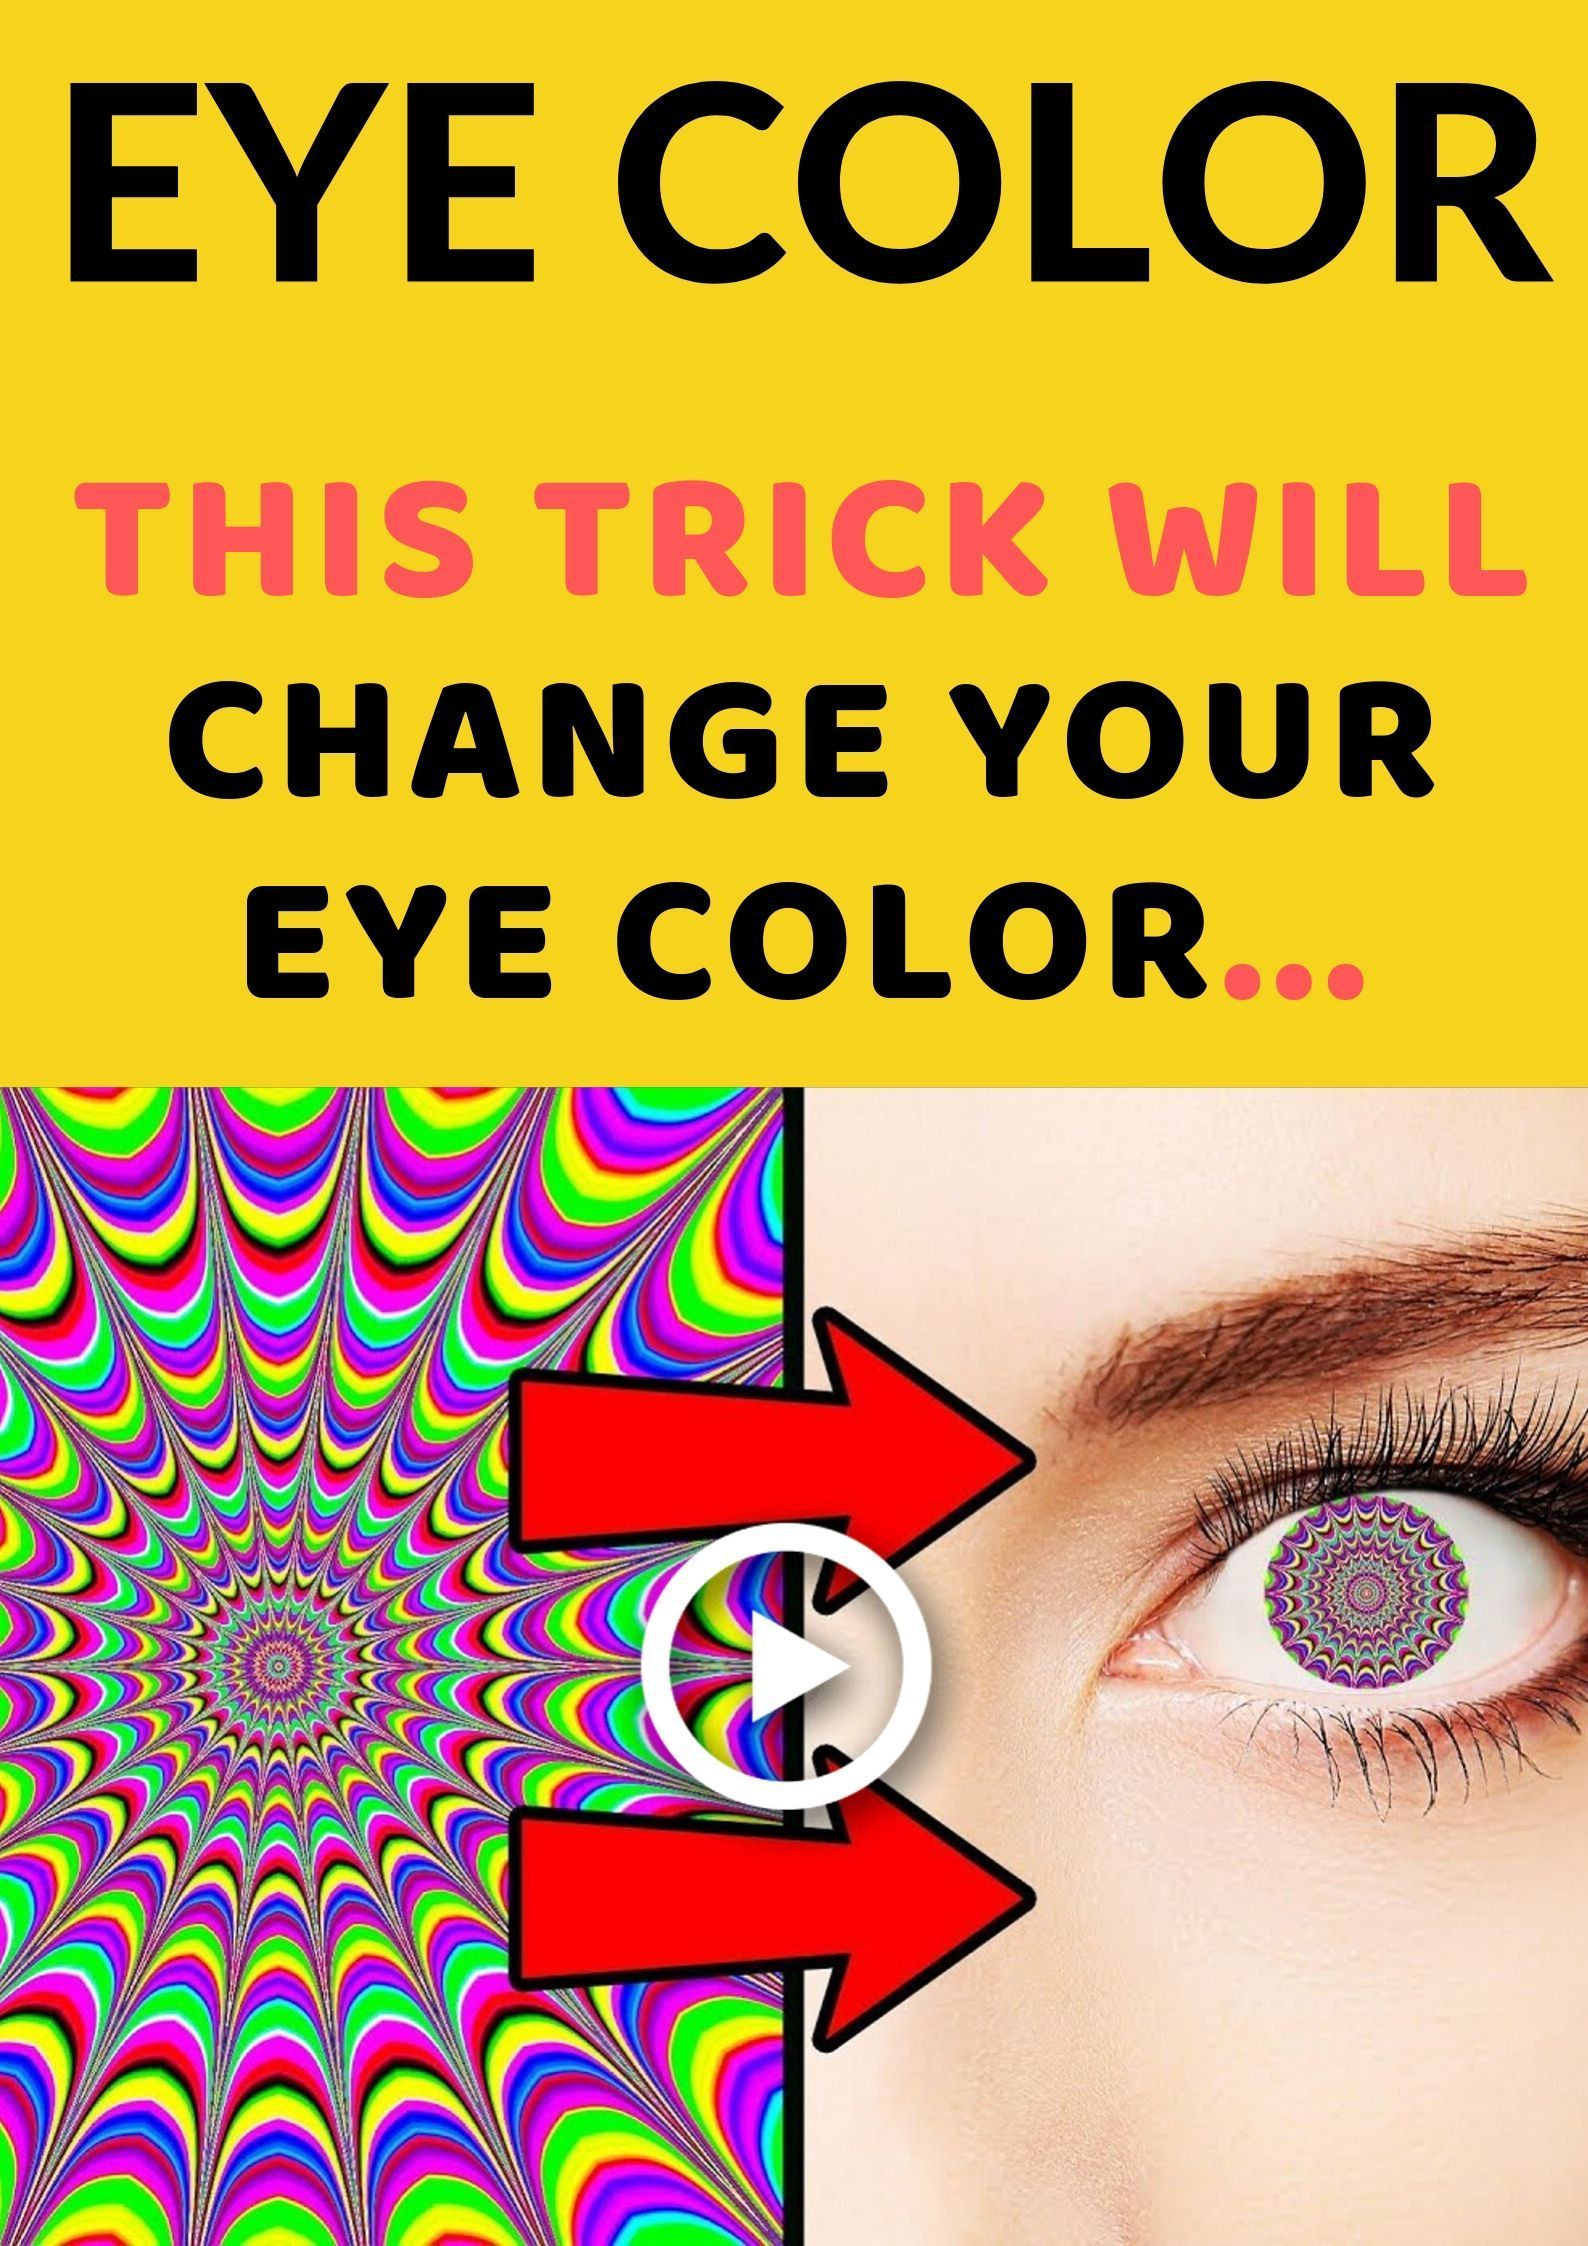 eye change illusions knowledge visual banana collected smart